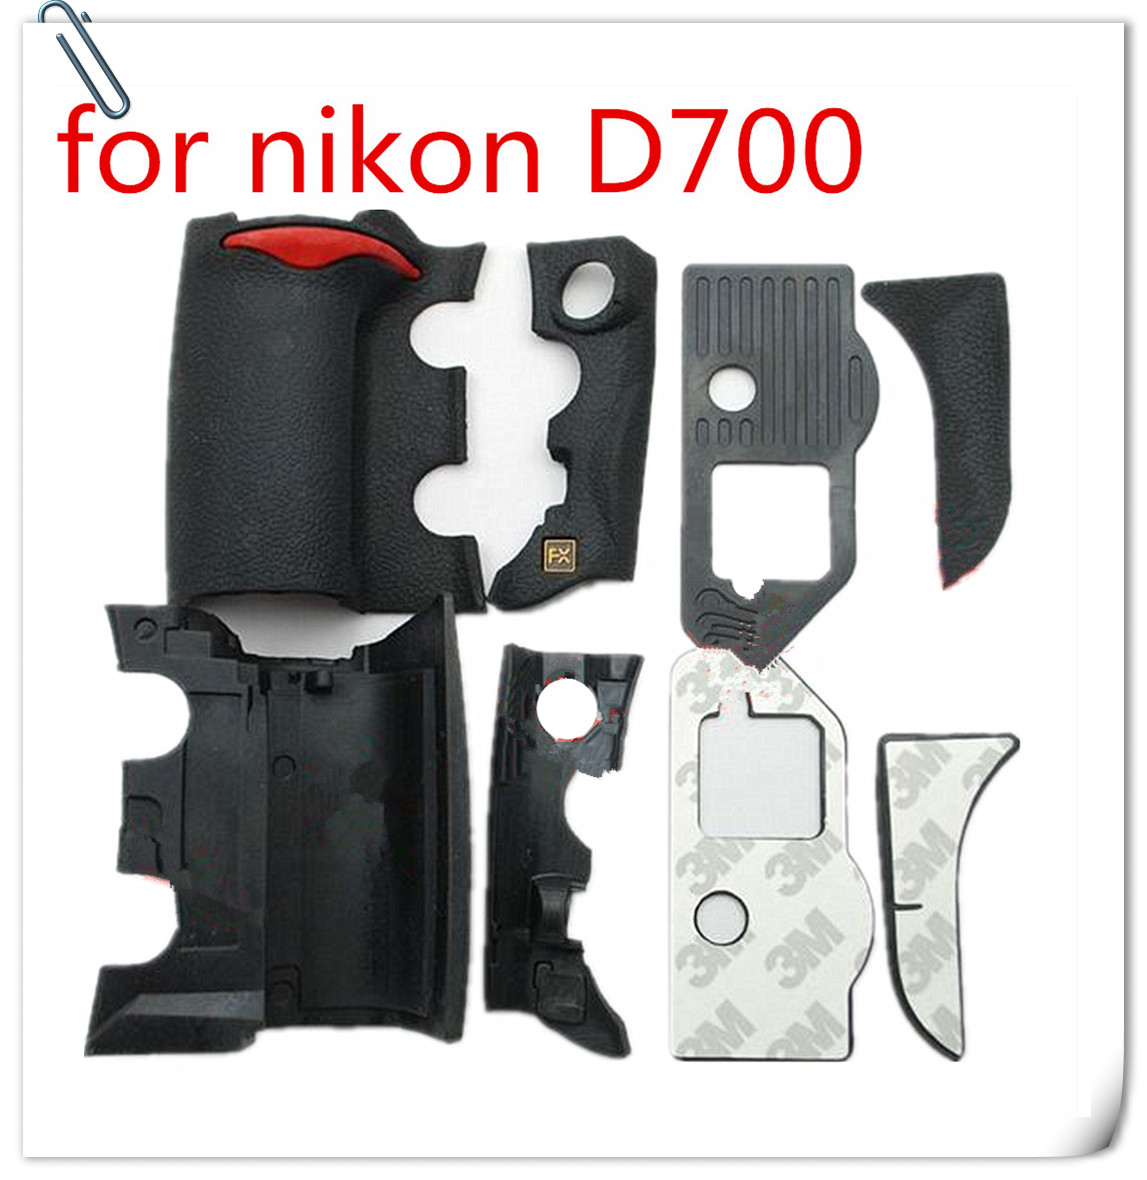 NEW A Set of 4 Pieces Grip <font><b>Rubber</b></font> Cover Unit For <font><b>Nikon</b></font> <font><b>D700</b></font> Digital Camera Body <font><b>Rubber</b></font> Shell + Tape image